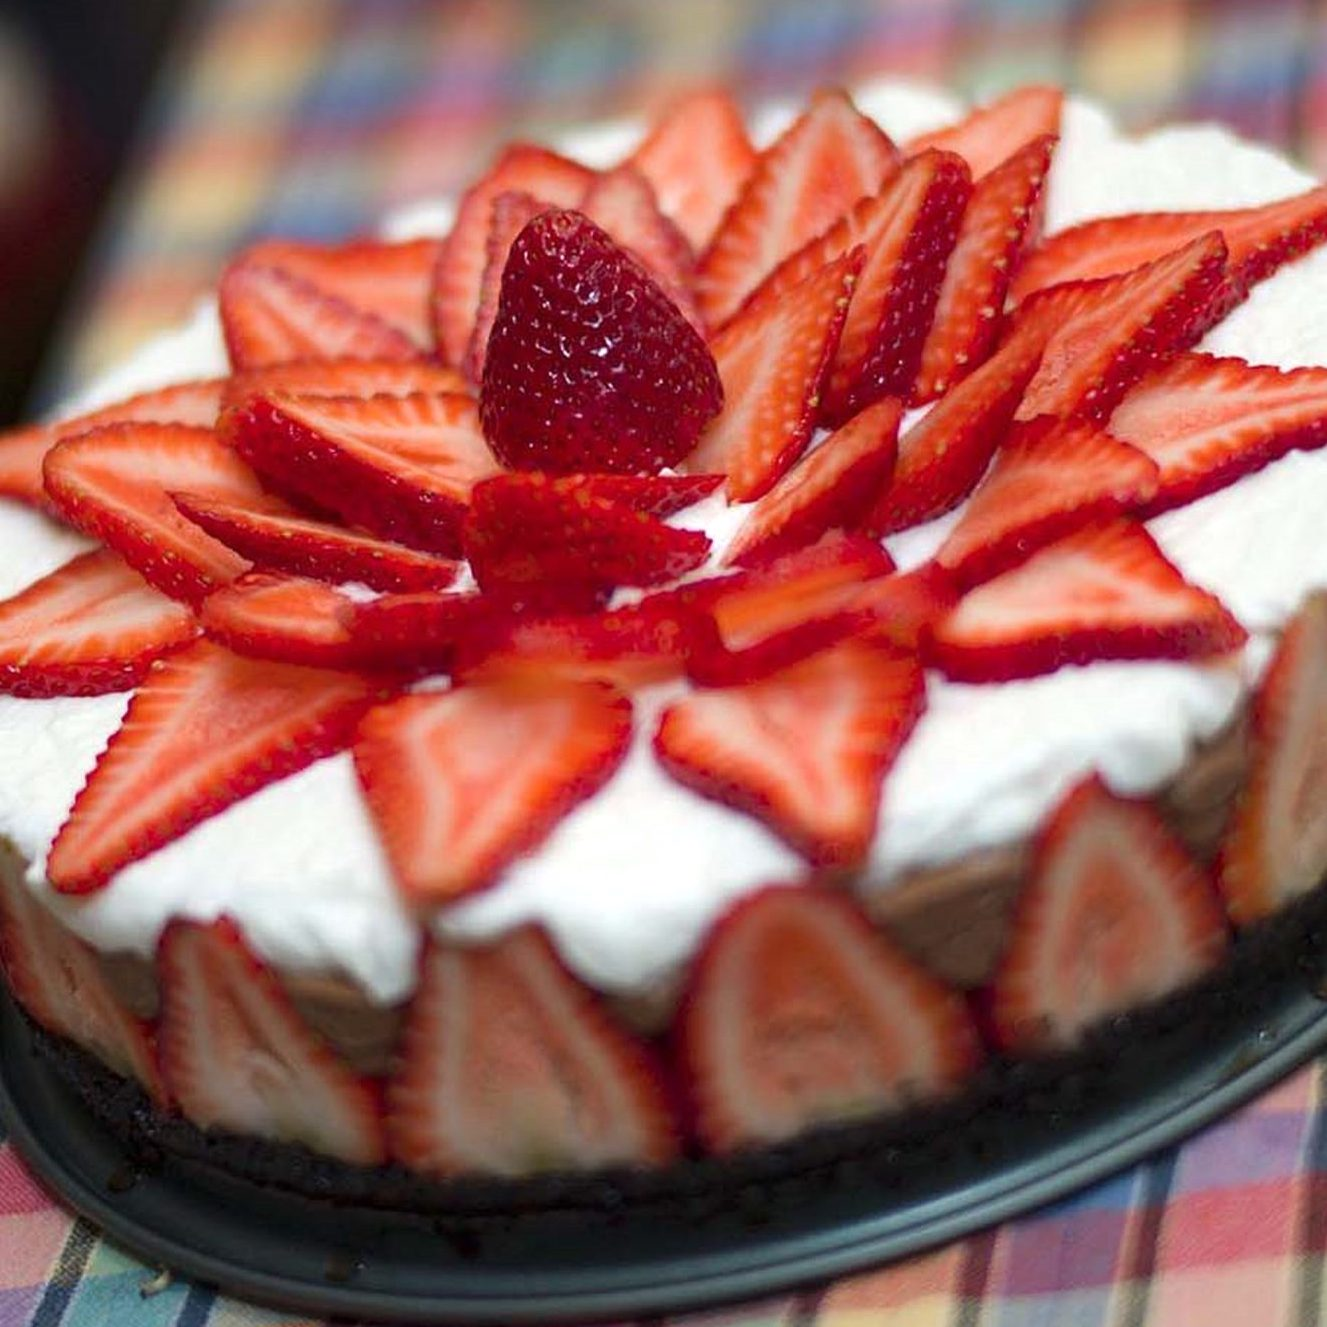 Strawberry Chocolate Mousse Cake topped with strawberries in a flower shape